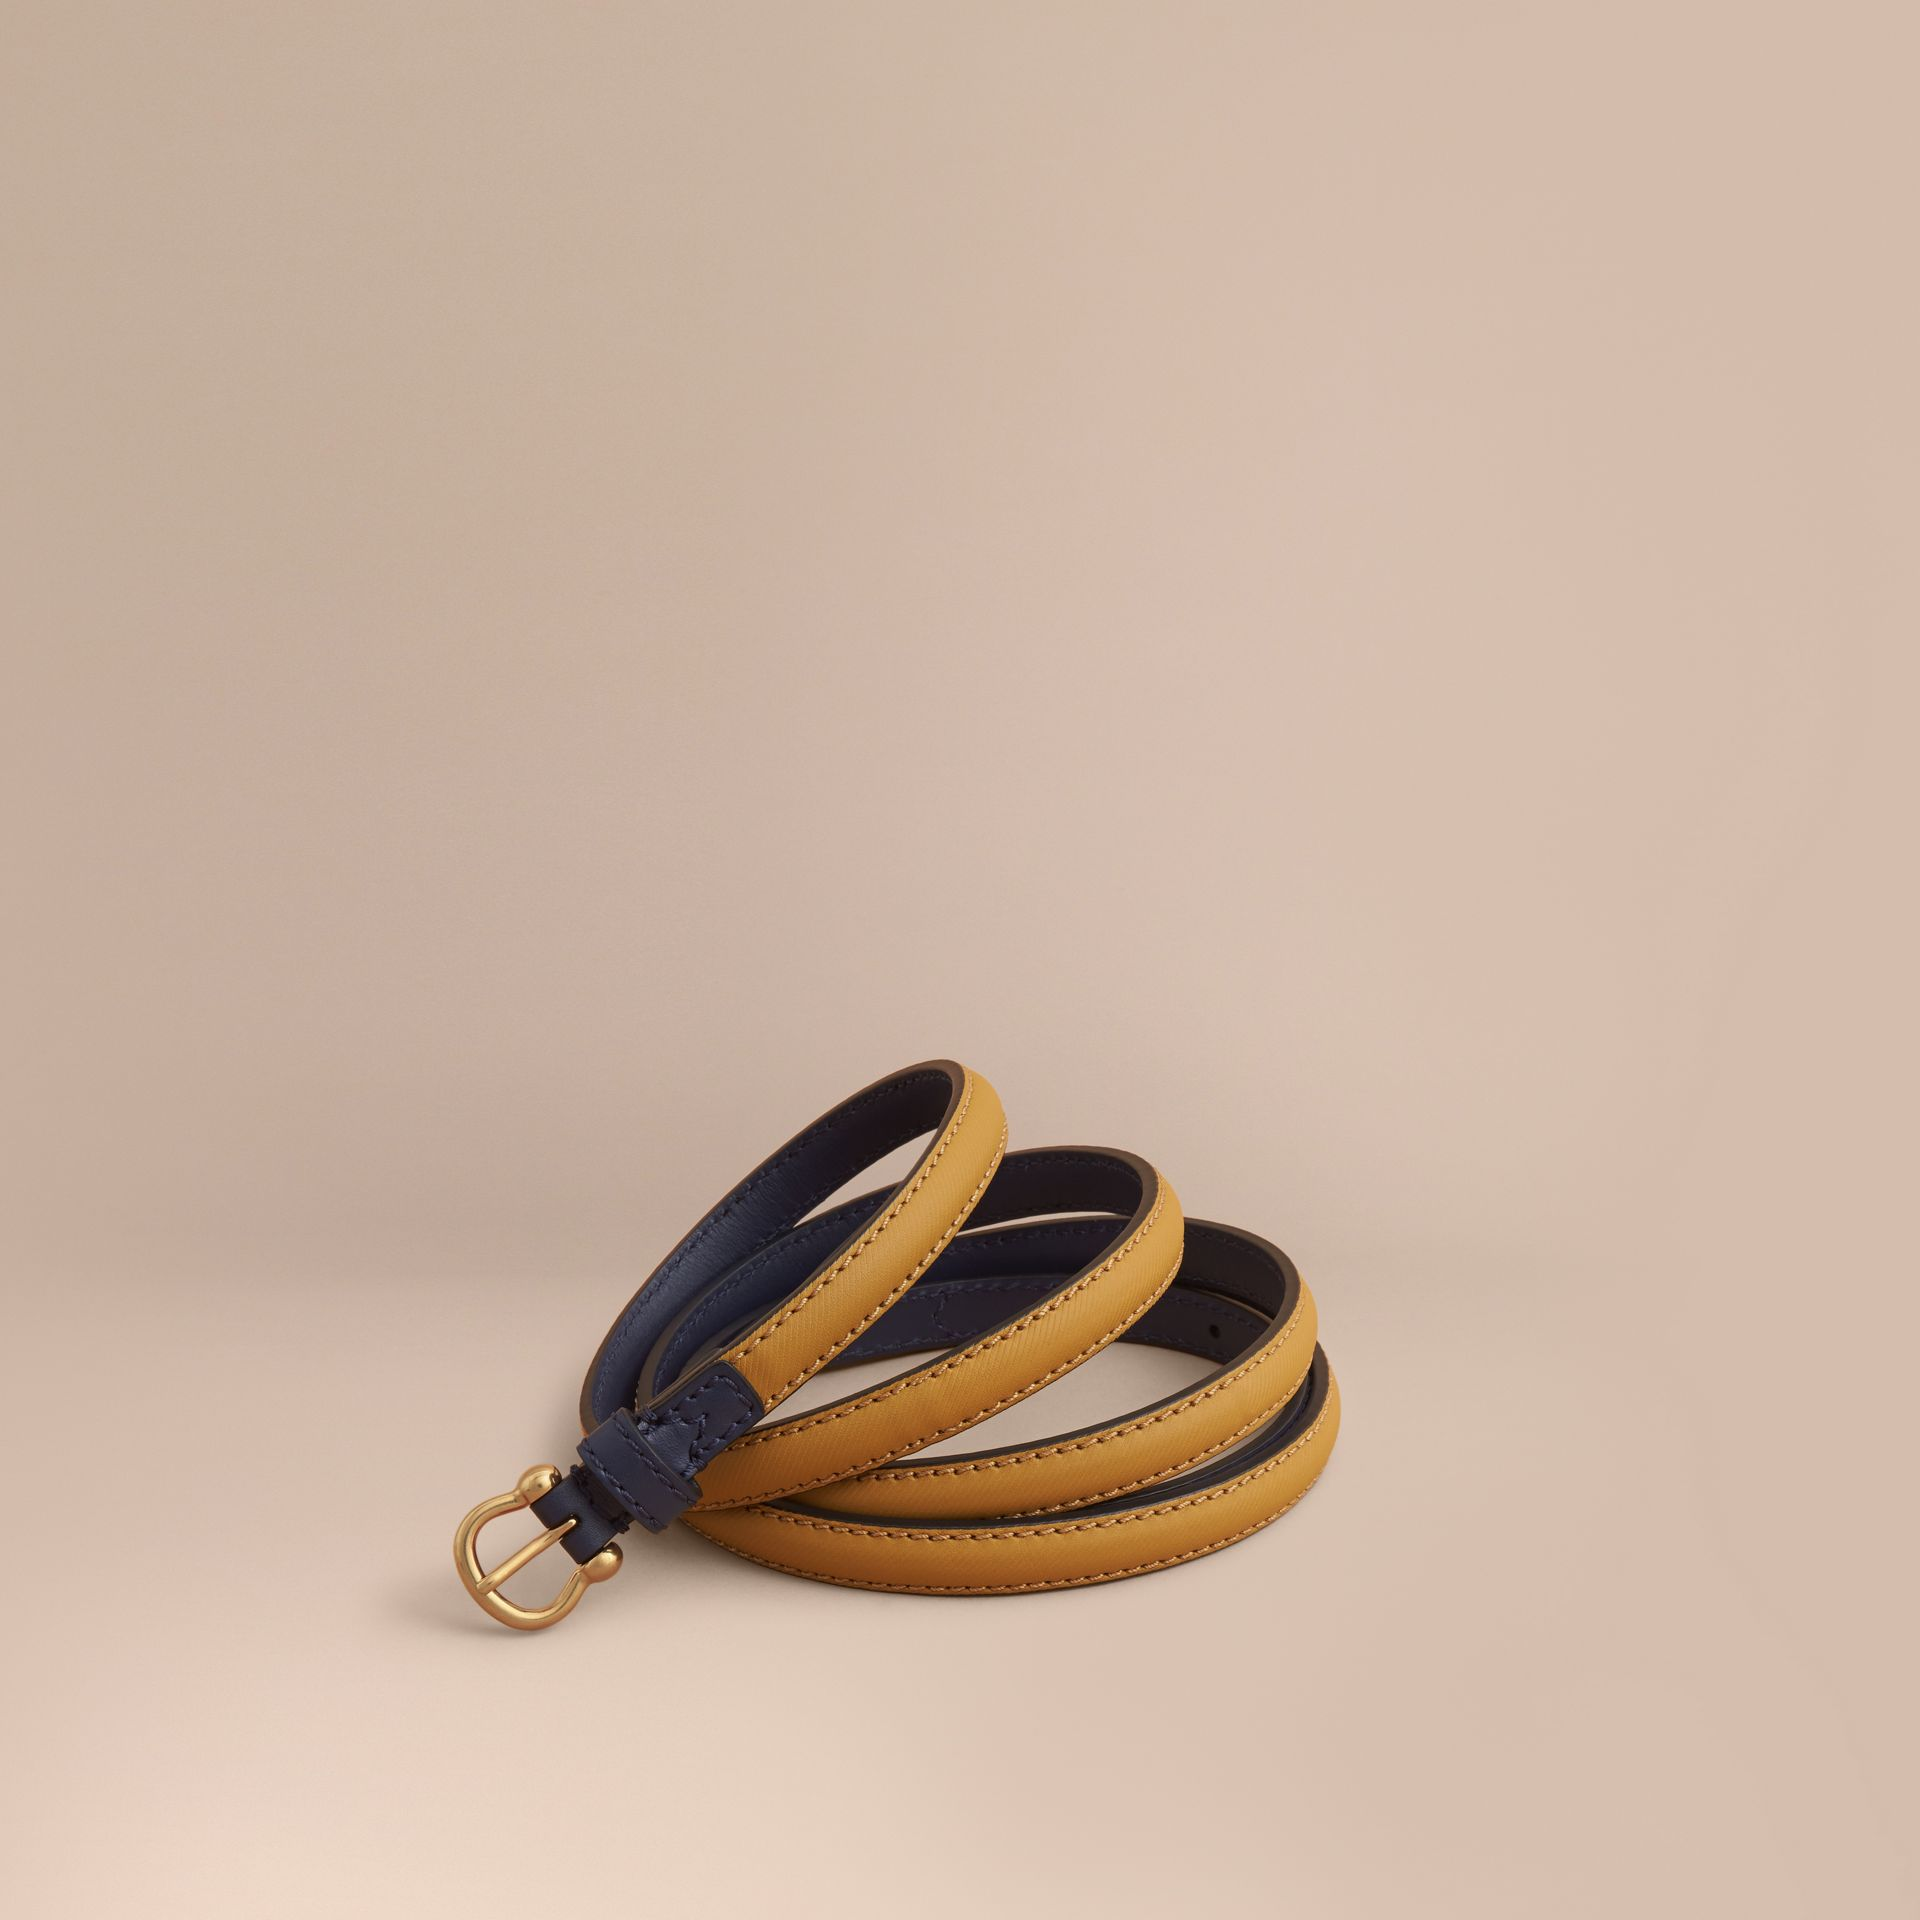 Two-tone Trench Leather Belt Ochre Yellow / Ink Blue - gallery image 1